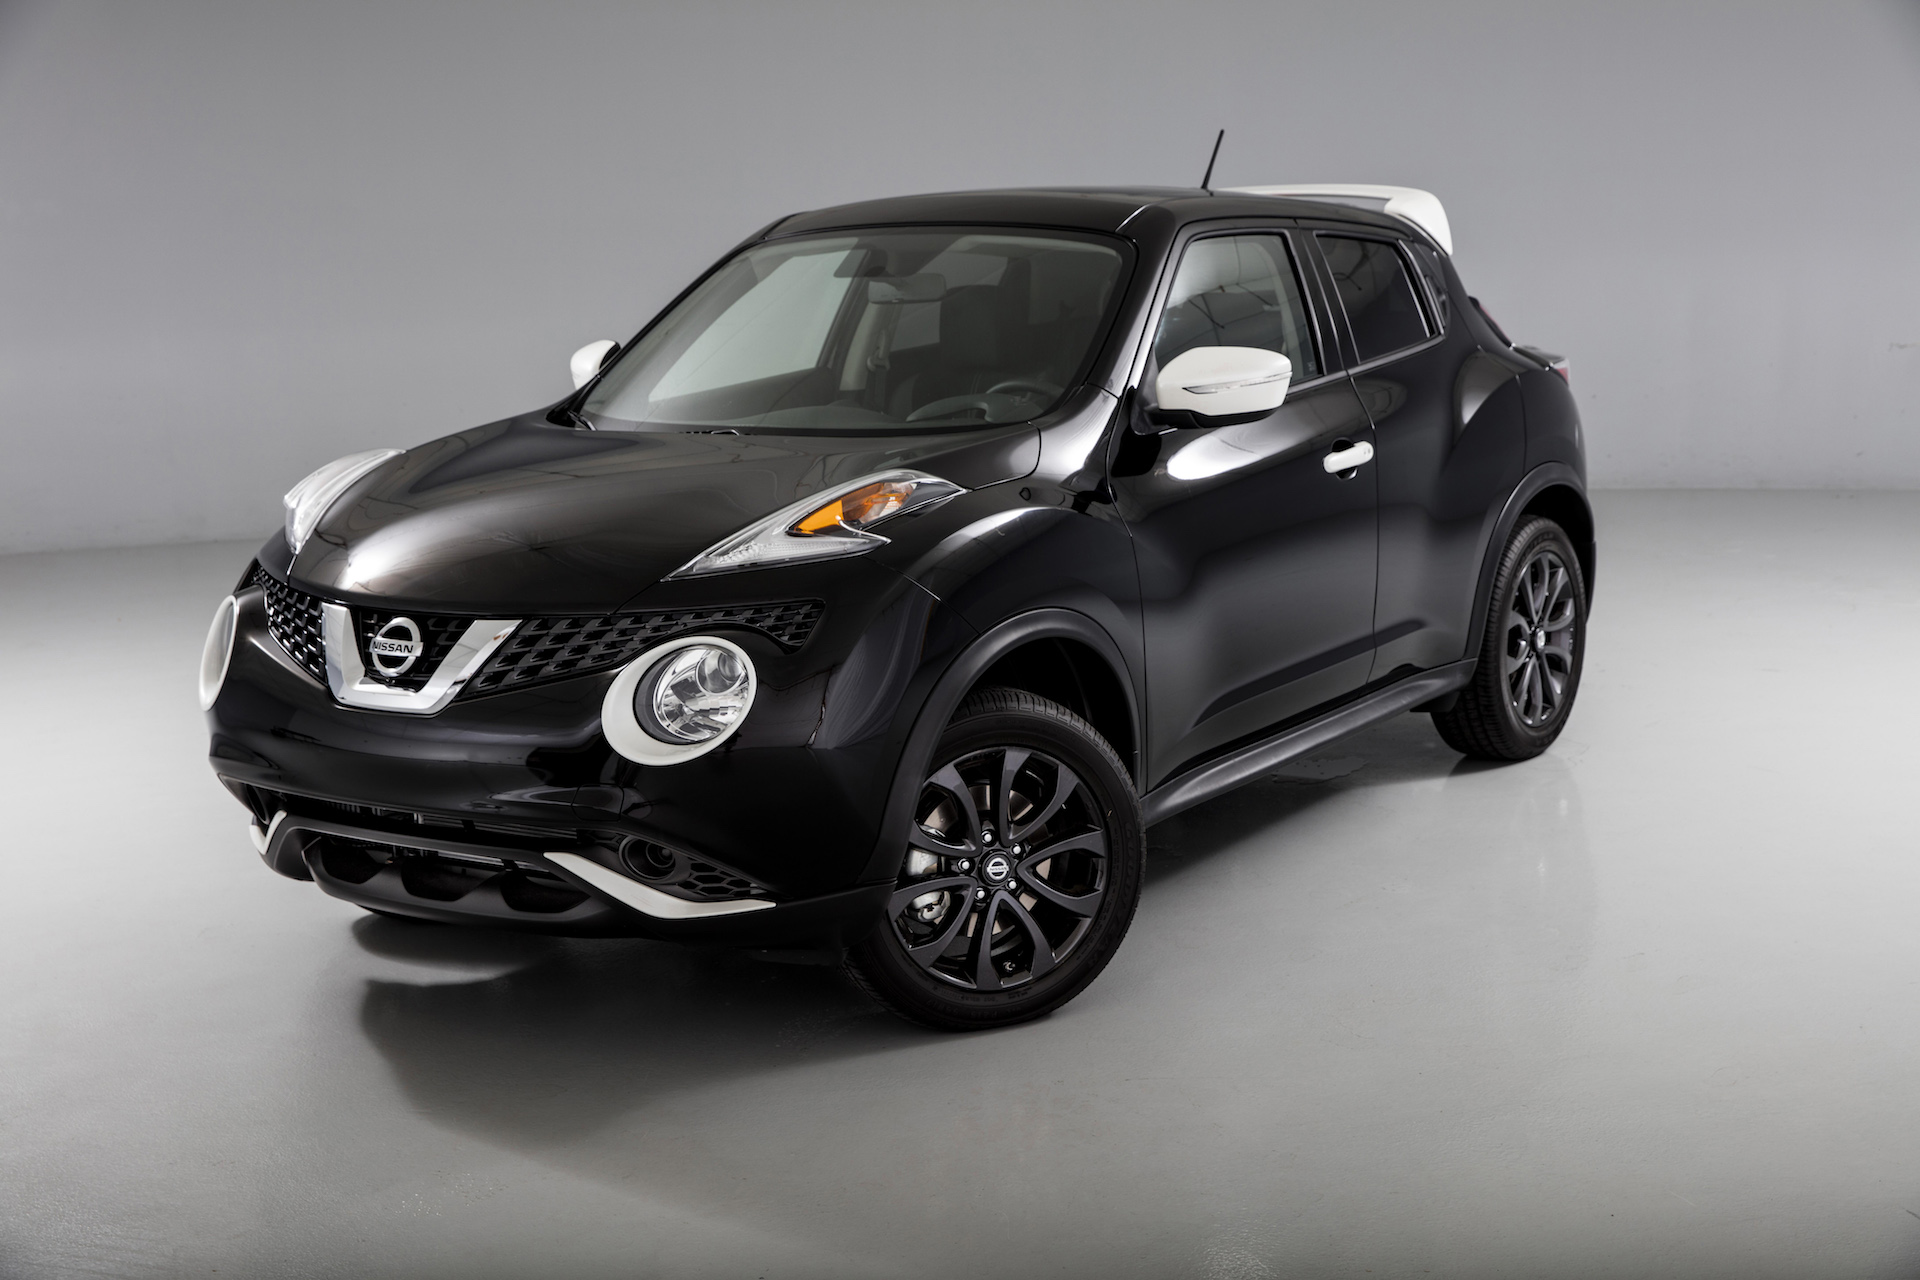 2017 nissan juke review ratings specs prices and for Bereifung nissan juke